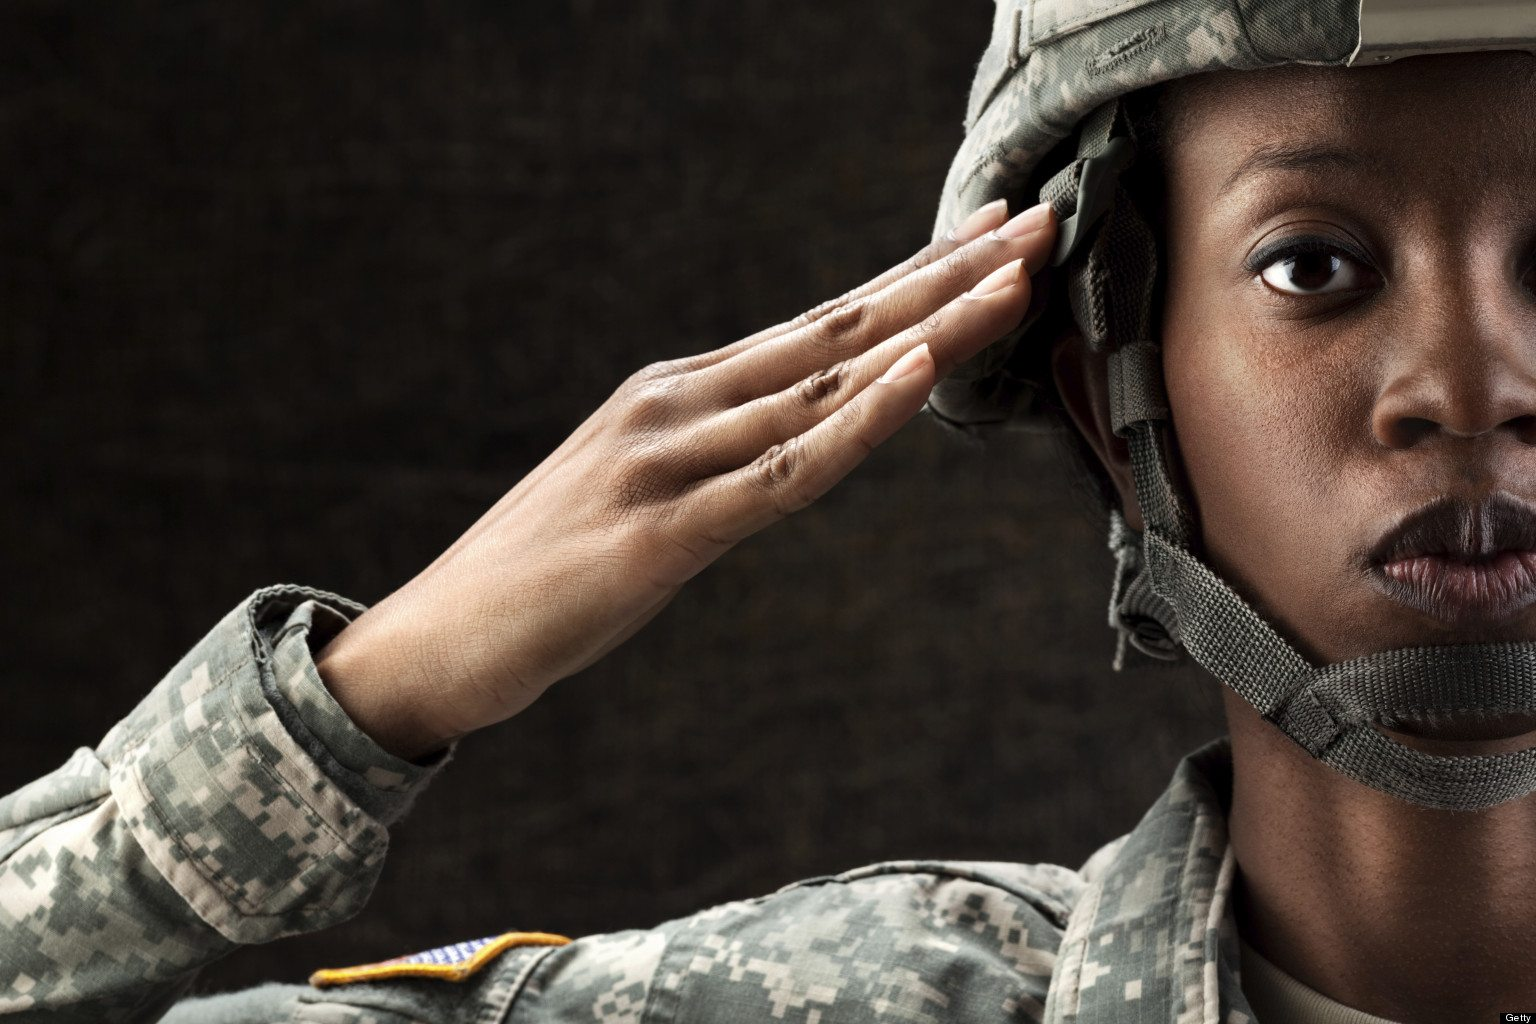 Women In The Military Who Served, THANK YOU FOR A JOB WELL DONE!